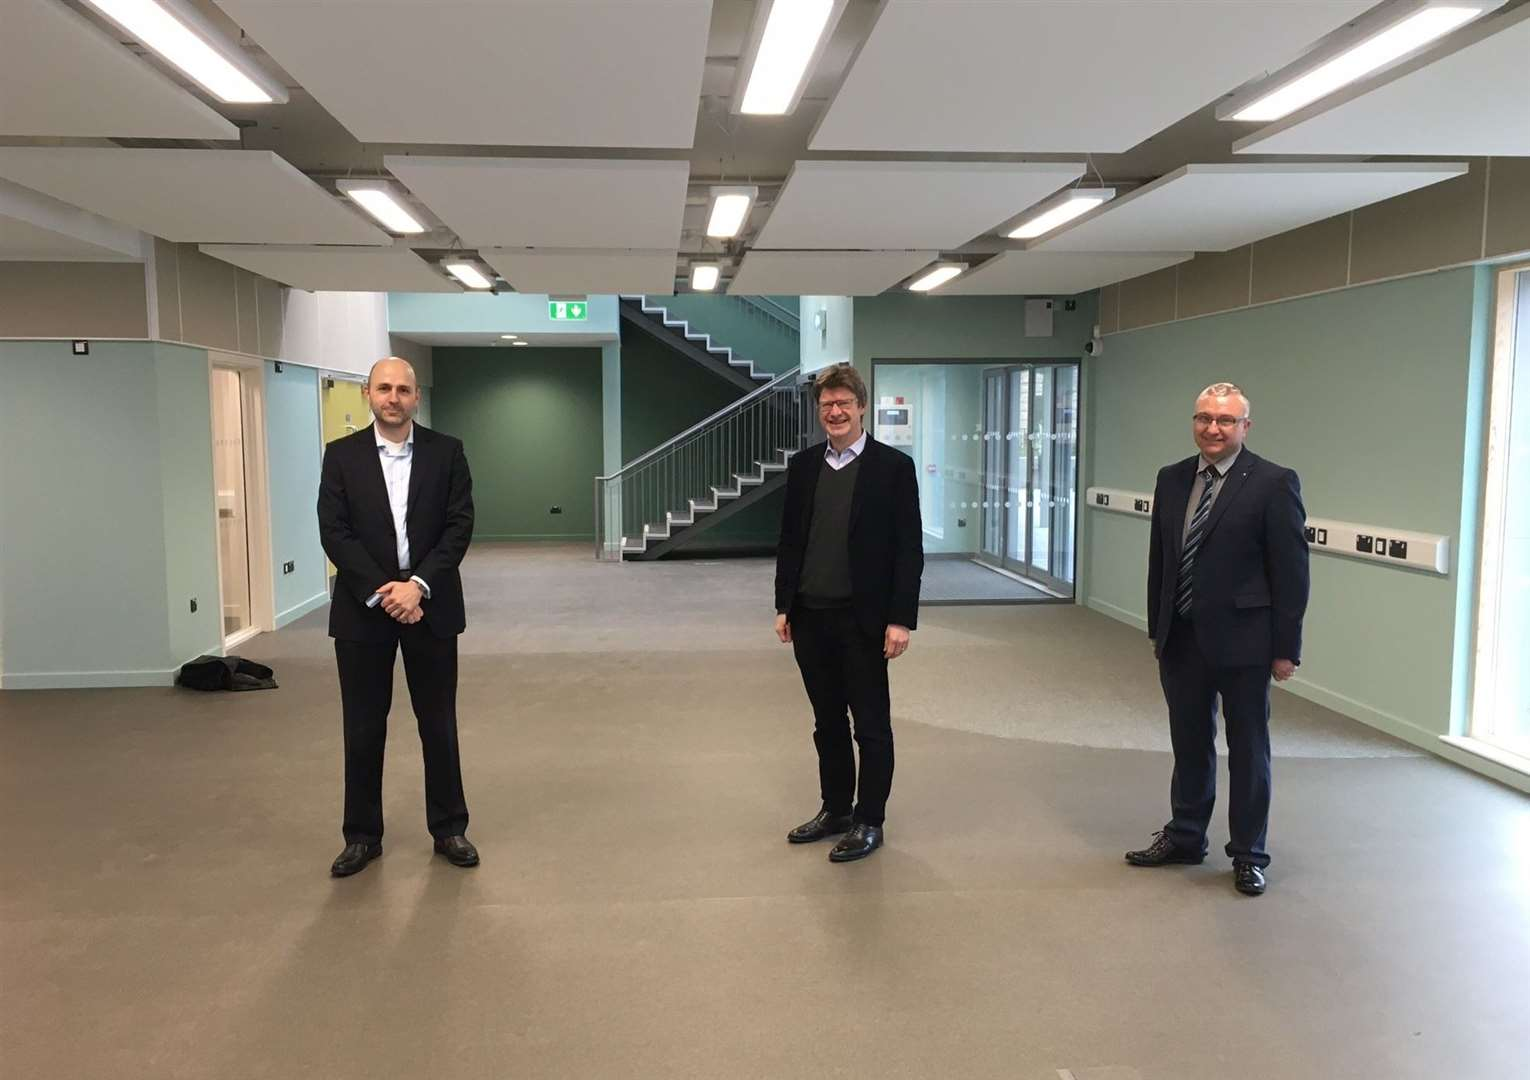 Jonathan White, Greg Clark and James Pearson, the head of KCC Libraries, Registration and Archives, in the main library space at the new civic centre in Southborough